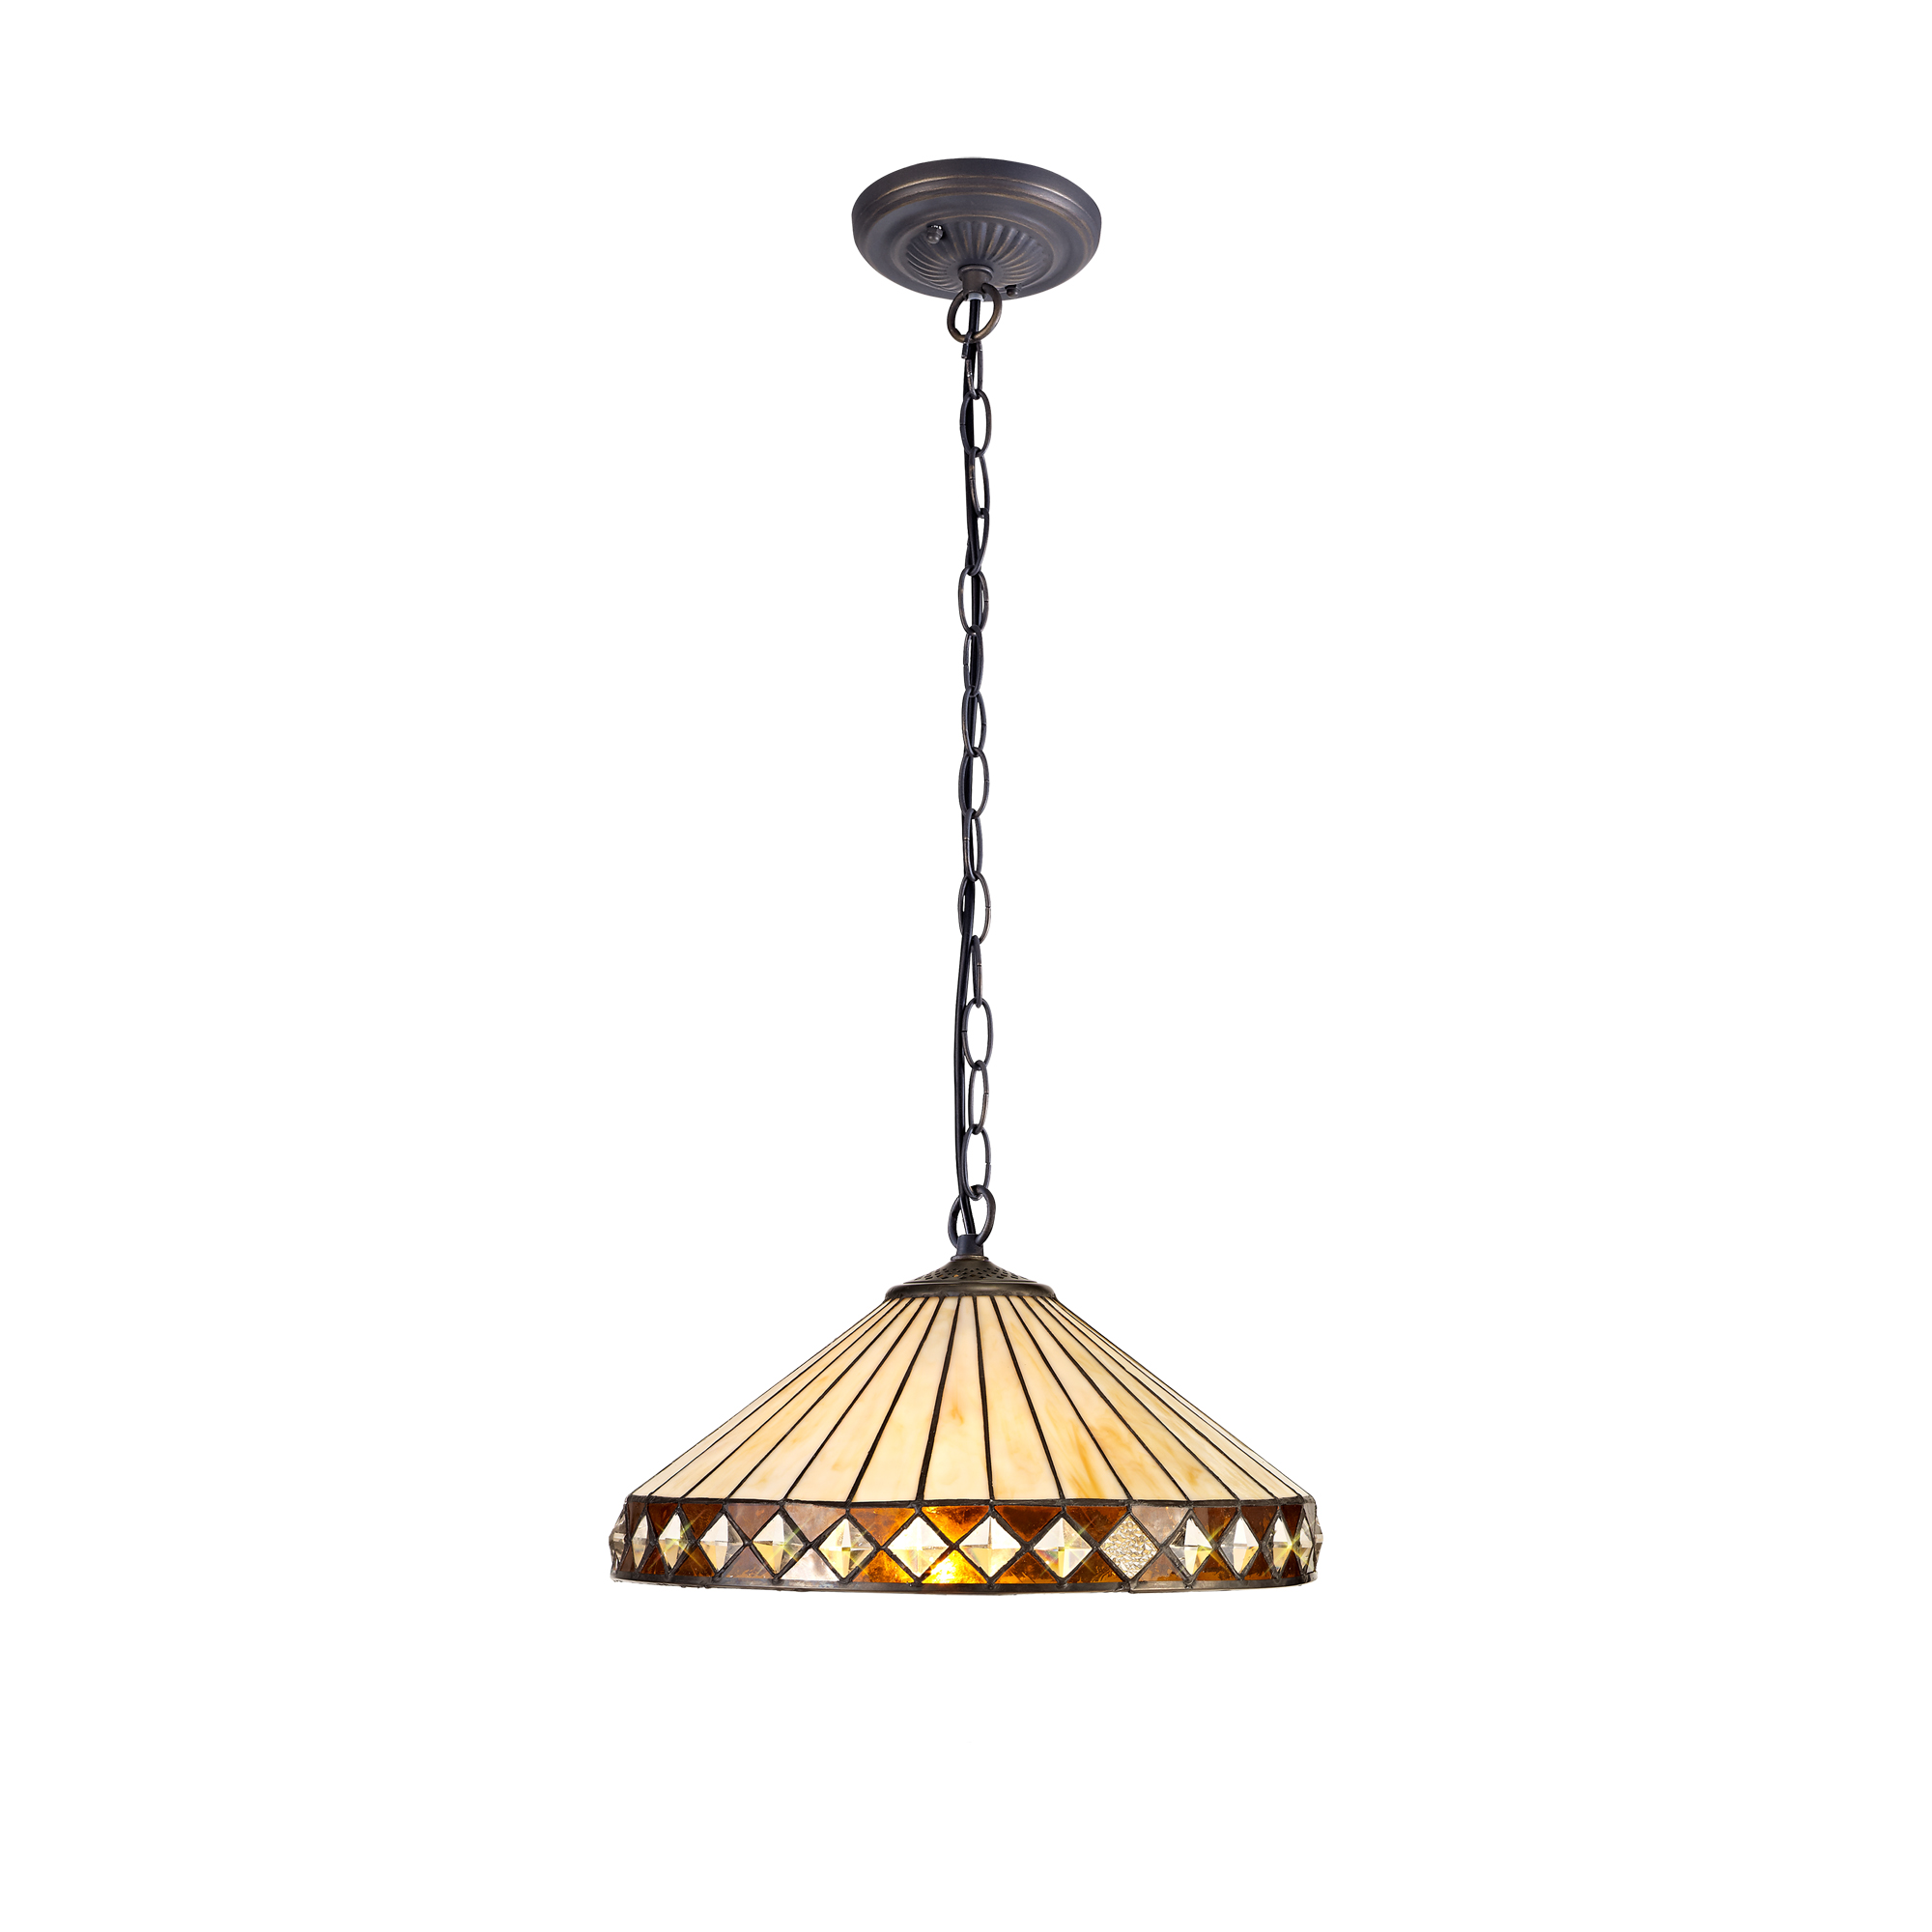 1 Light Downlighter Pendant E27 With 40cm Tiffany Shade, Amber/C/Crystal/Aged Antique Brass